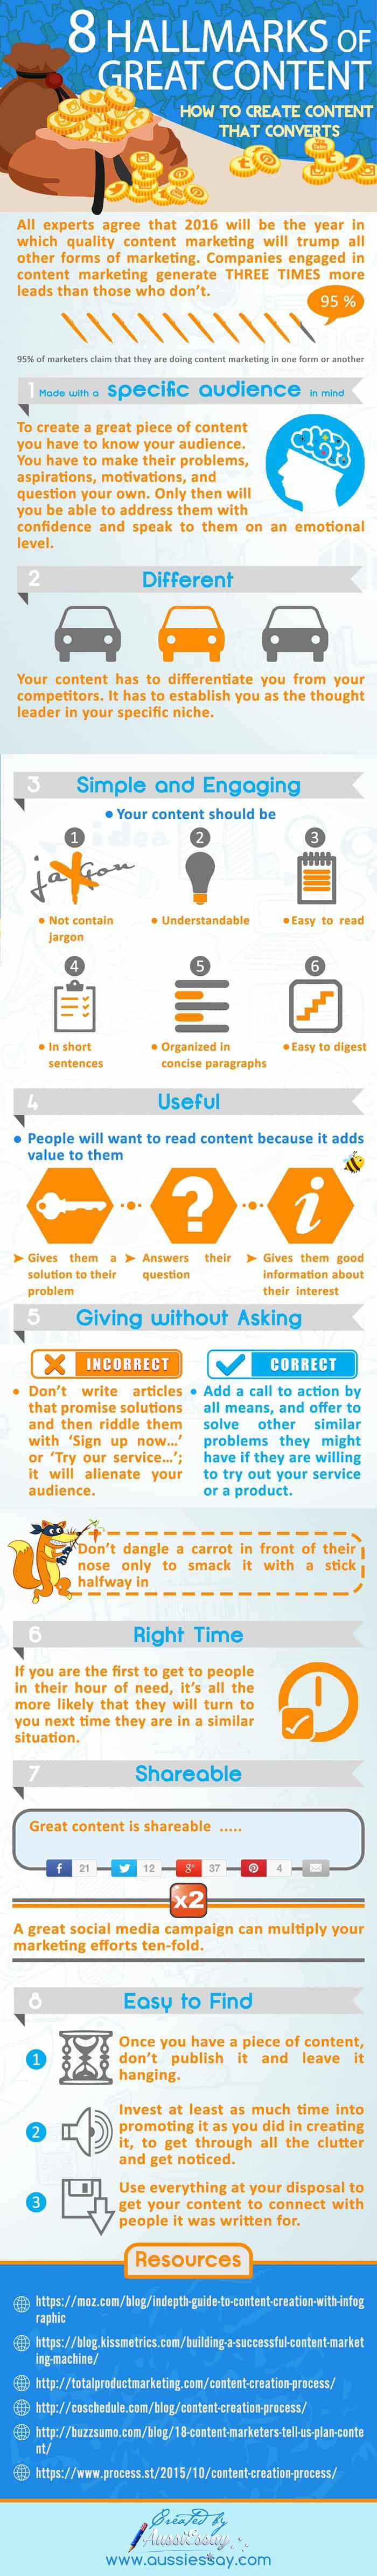 great content infographic